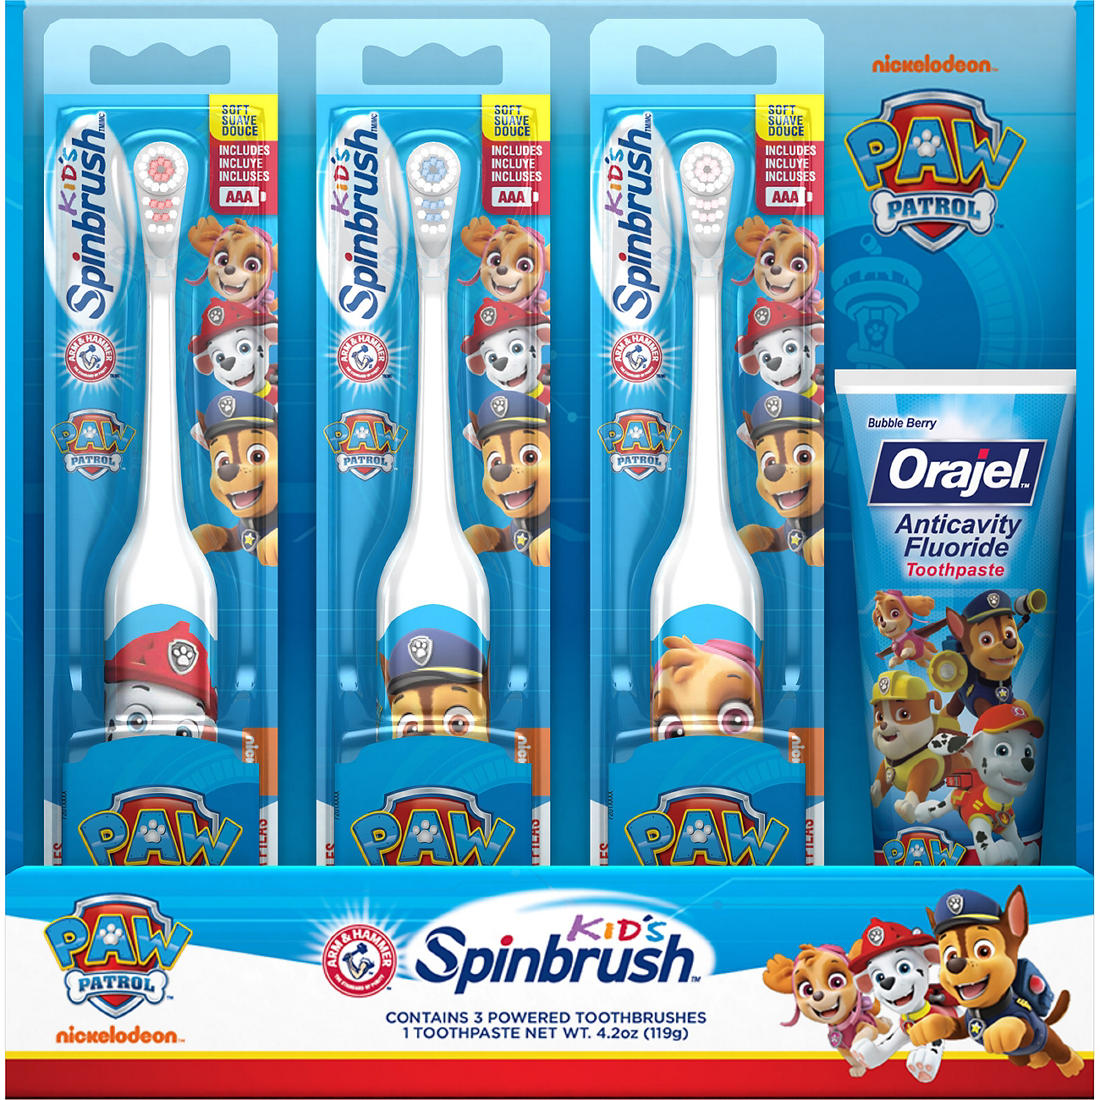 Arm & Hammer Kid's Spinbrush Paw Patrol Electric Toothbrush, 3 pk , with  Orajel Anticavity Fluoride Toothpaste, 4 2 oz